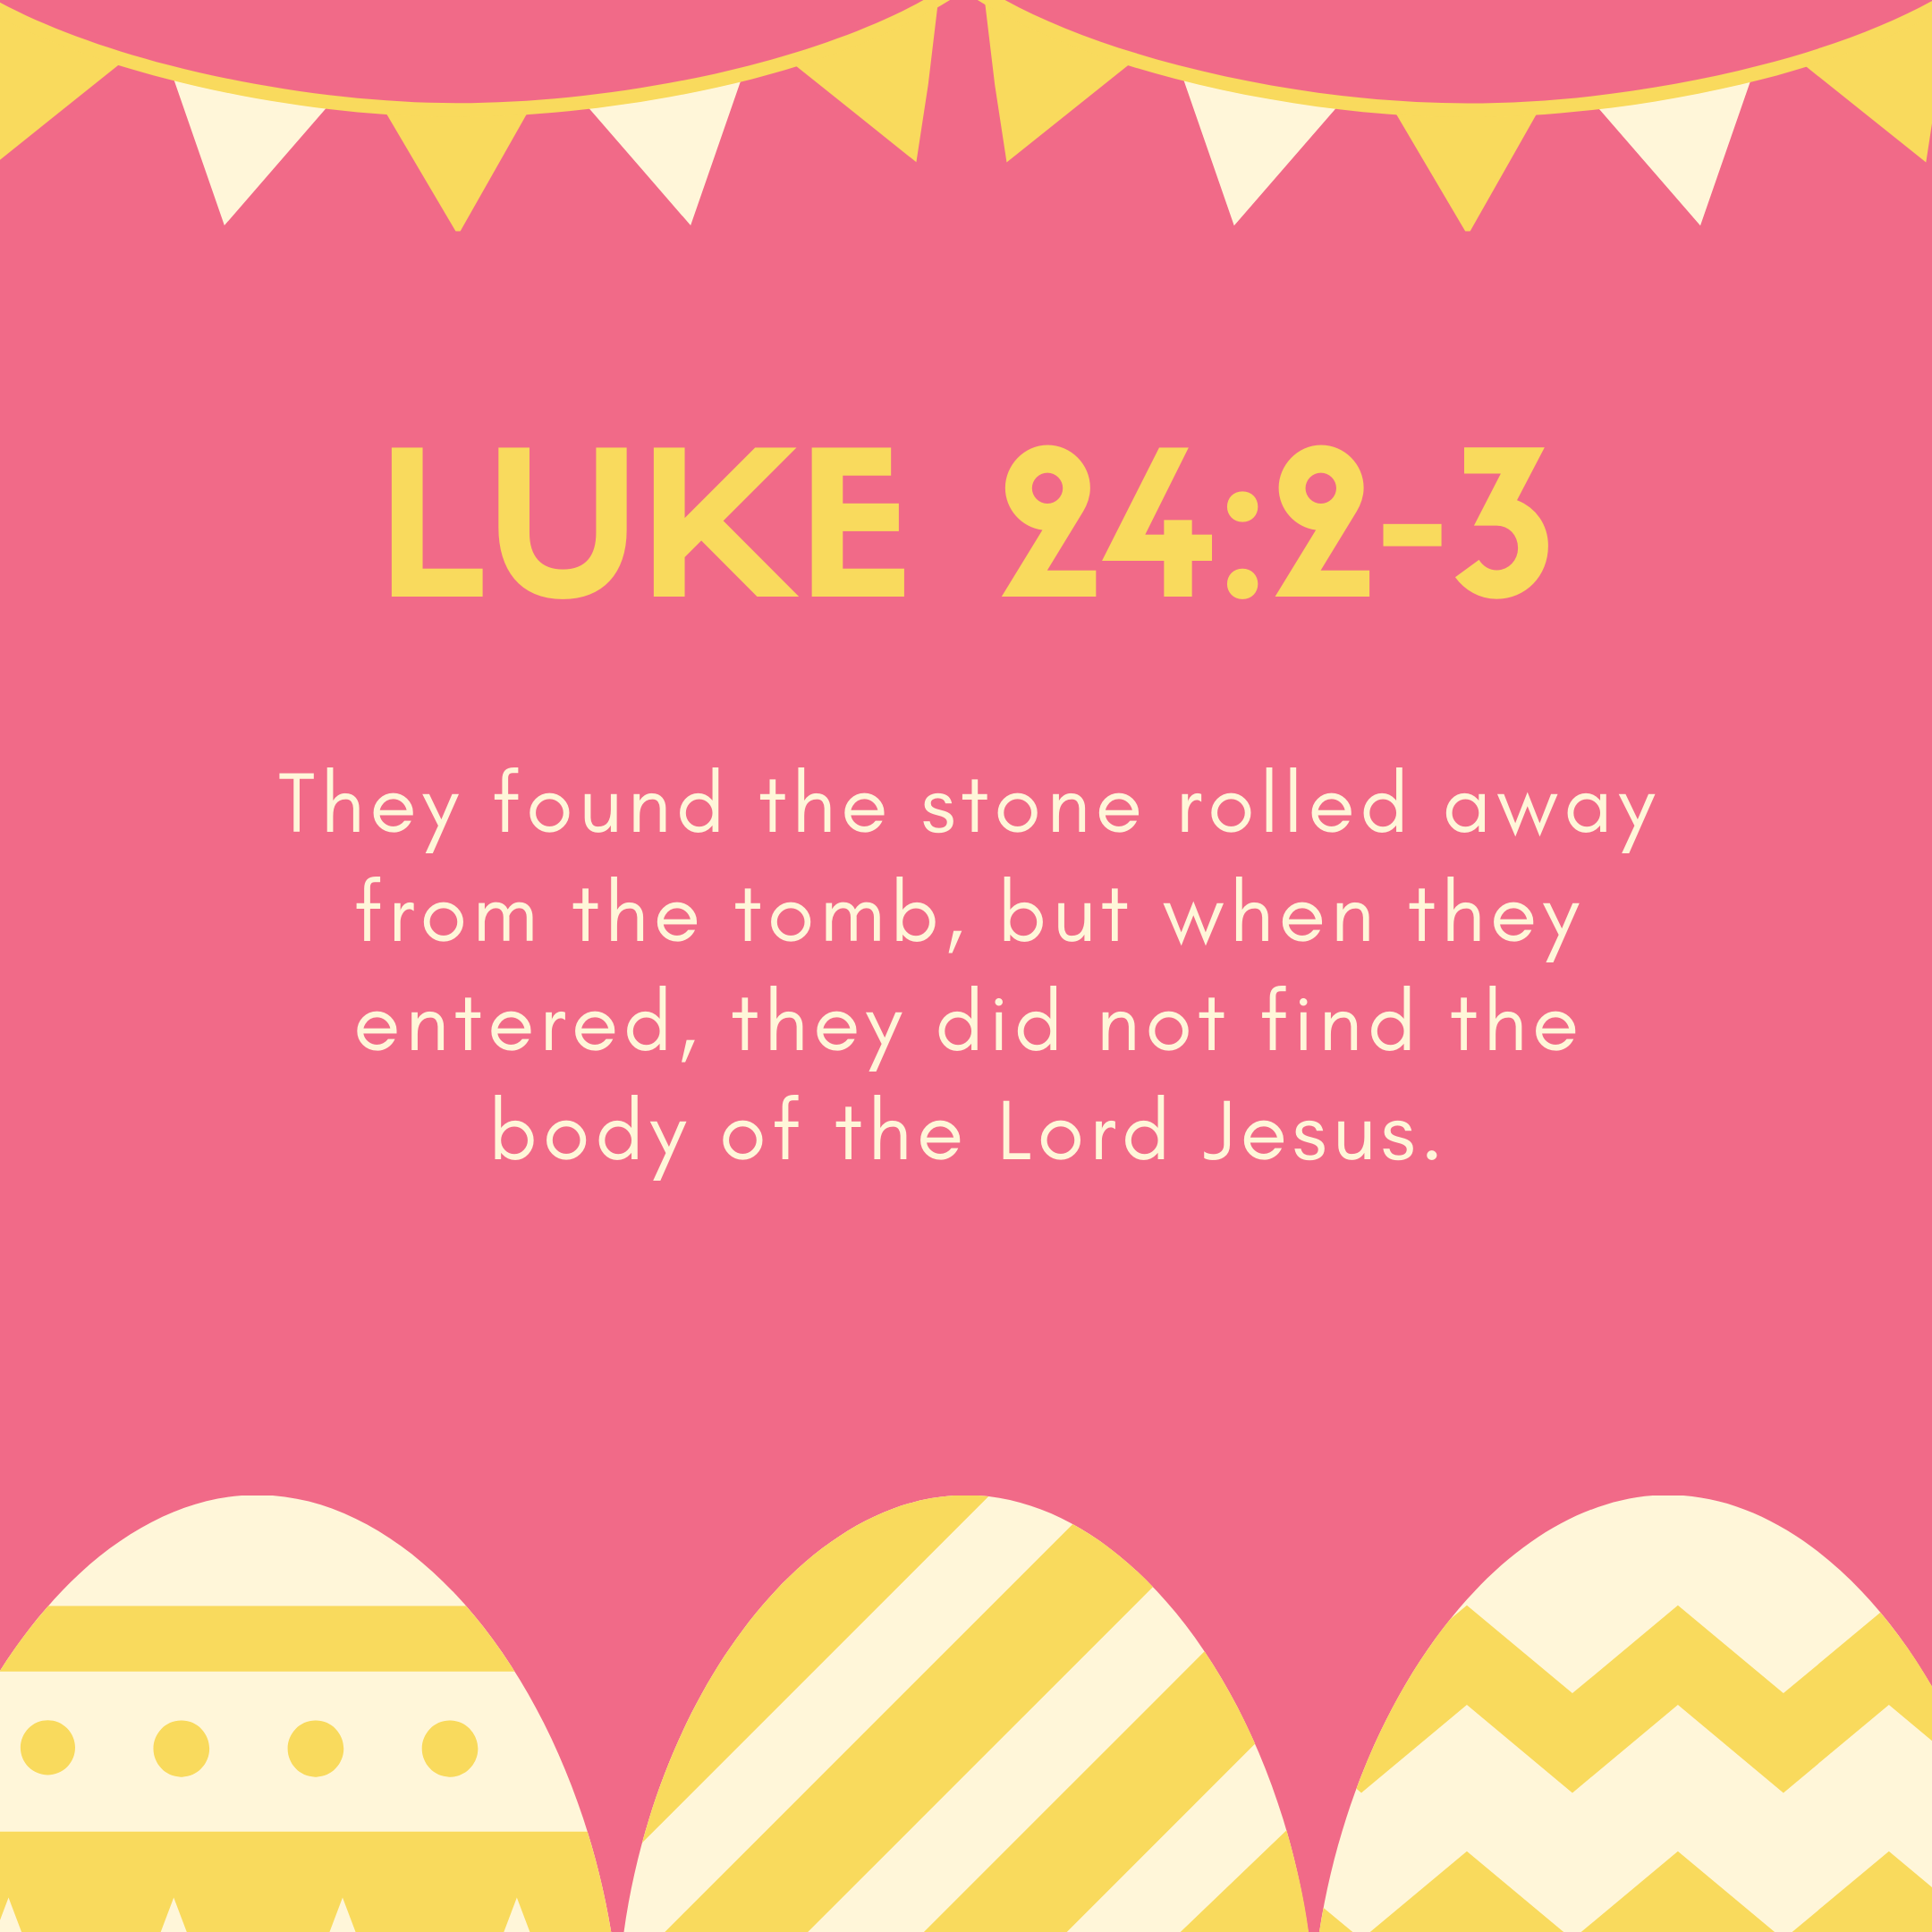 Luke 24:2-3 They found the stone rolled away from the tomb, but when they entered, they did not find the body of the Lord Jesus.